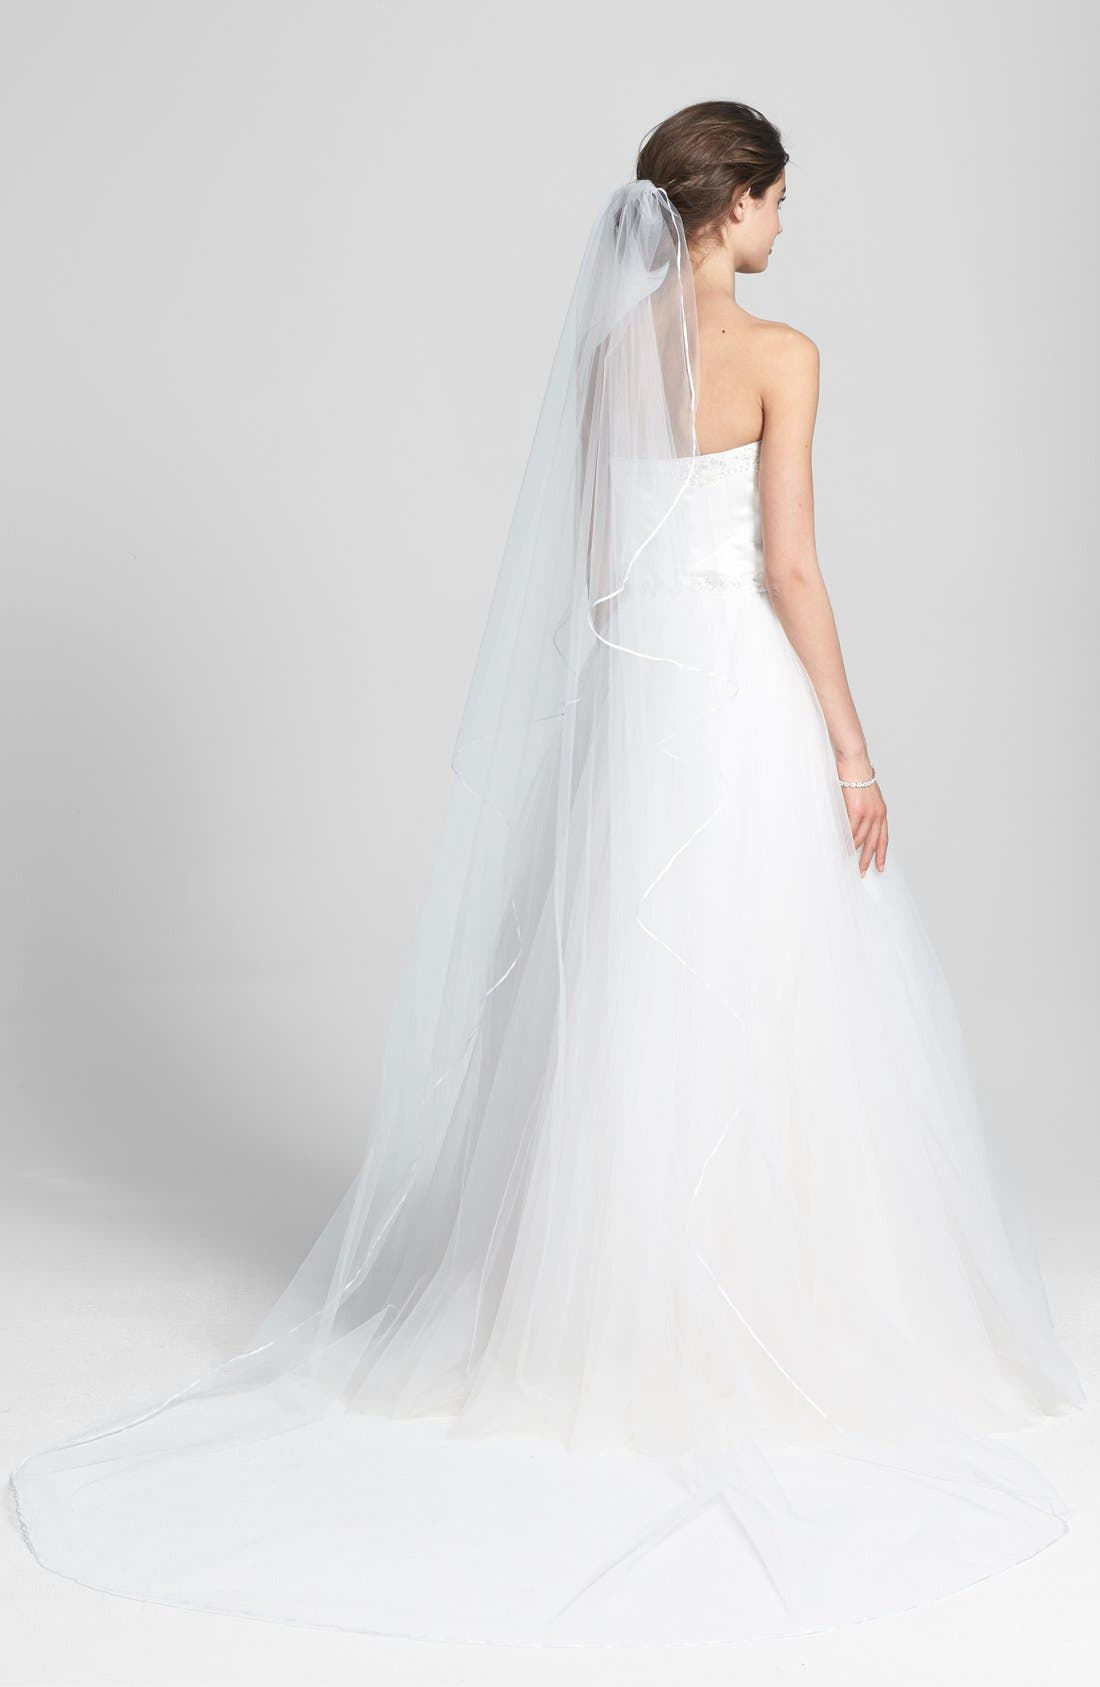 Wedding Belles New York 'Mable' Satin Trim Cathedral Veil (Nordstrom Exclusive)